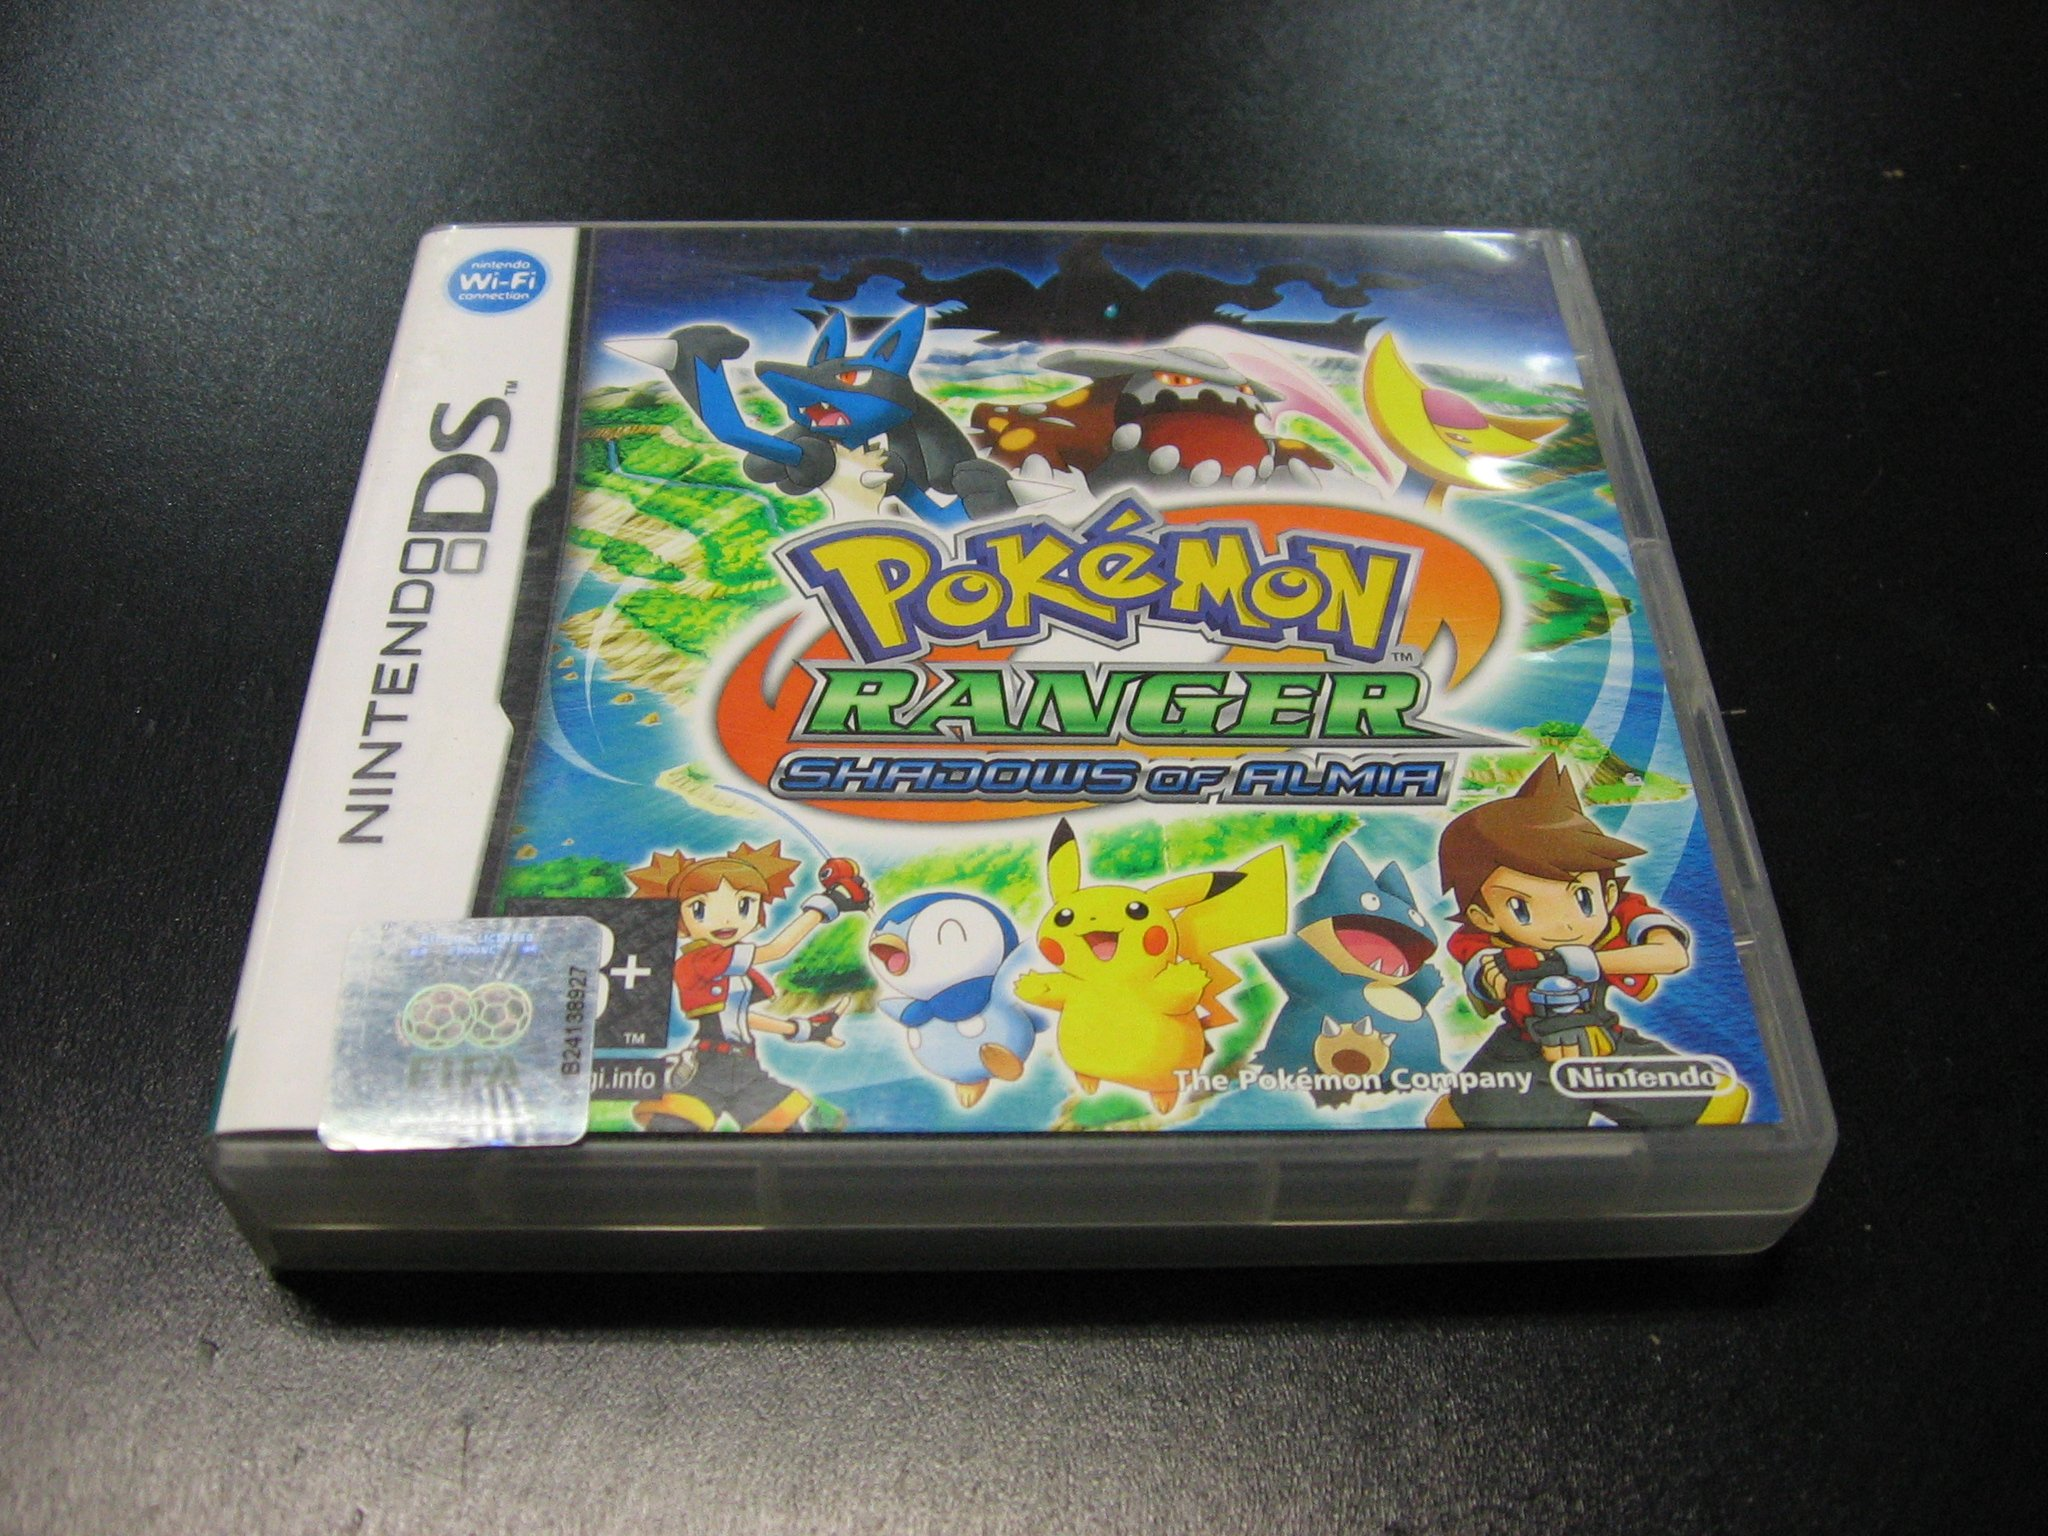 POKEMON RANGER SHADOWS OF ALMIA - NINTENDO DS - Opole